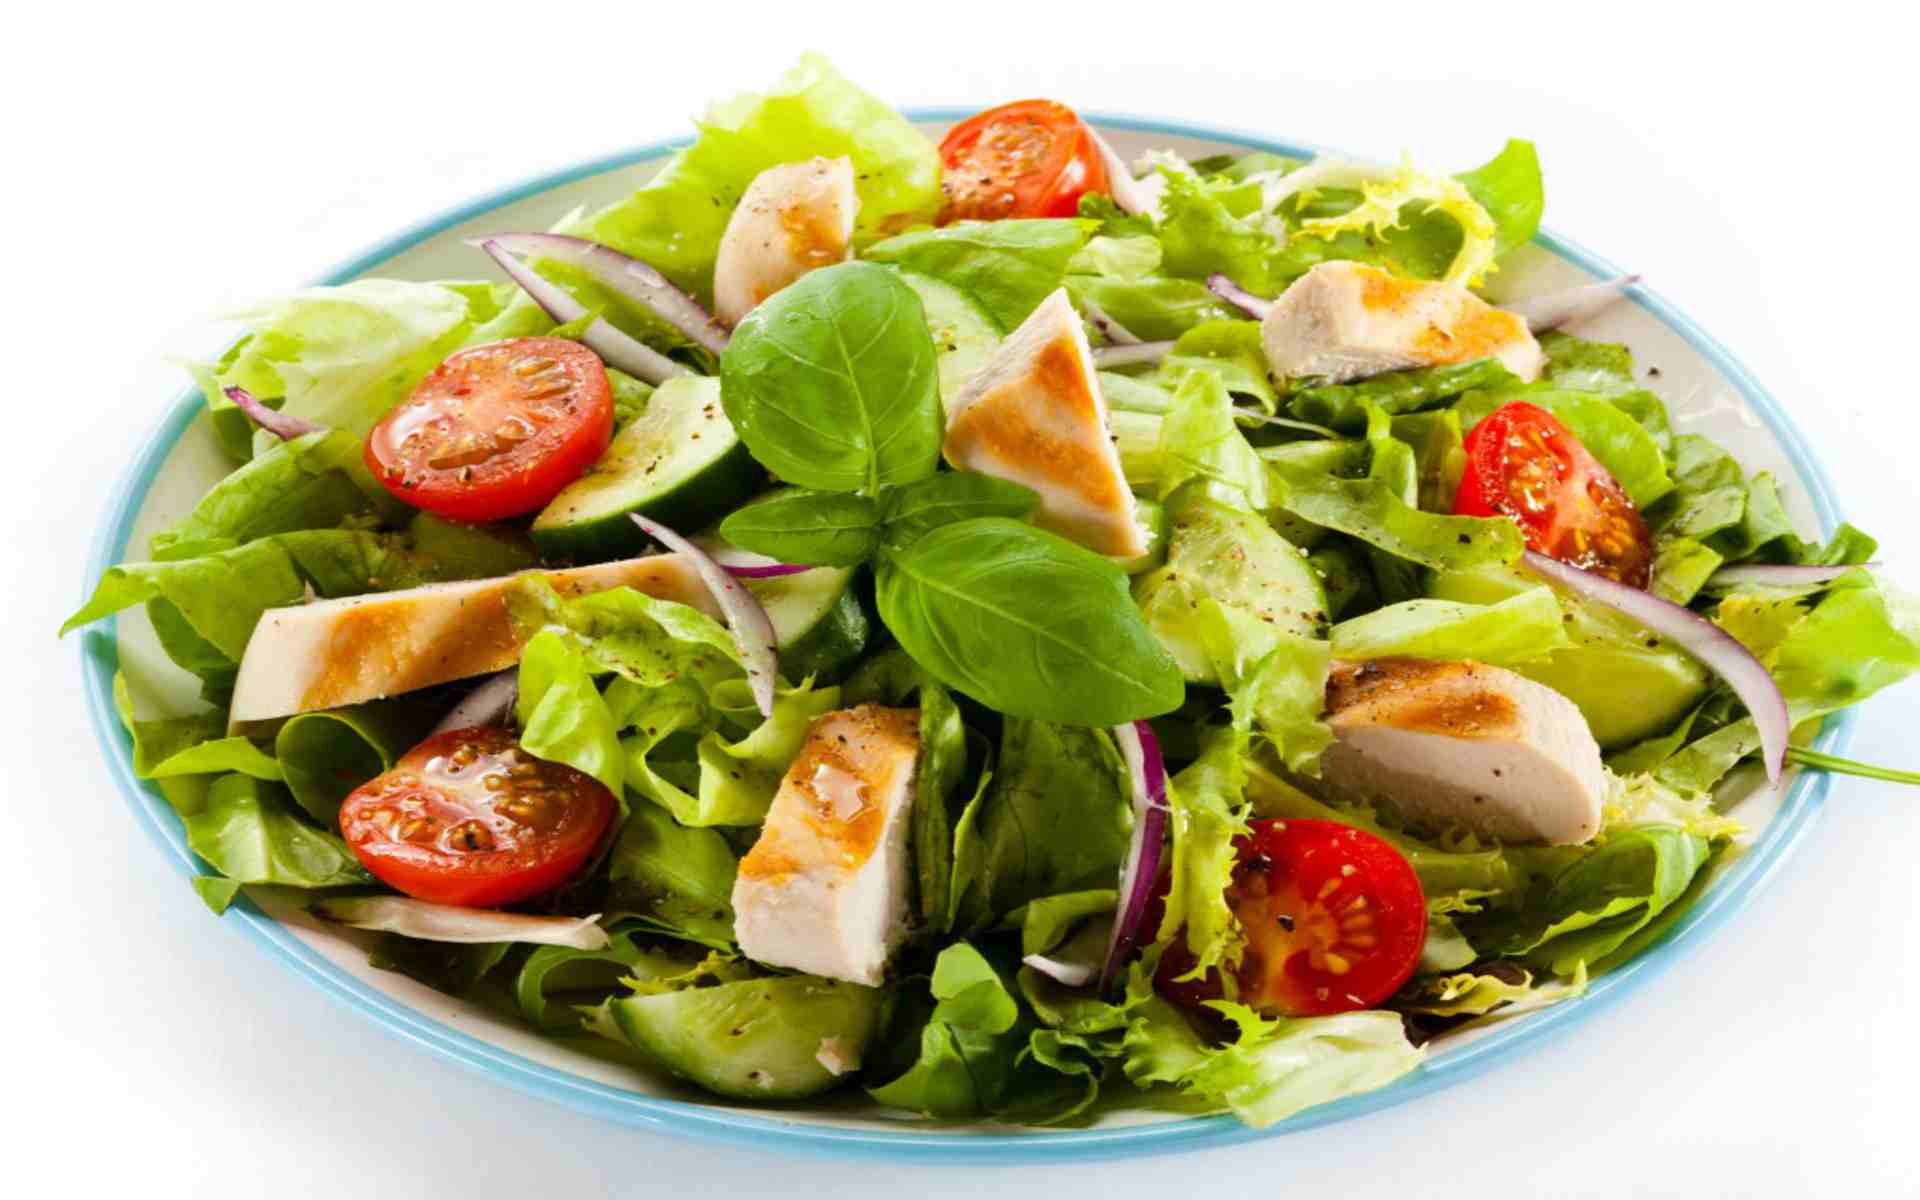 DOWNLOAD: salad meat tomatoes free picture 2560 x 1600